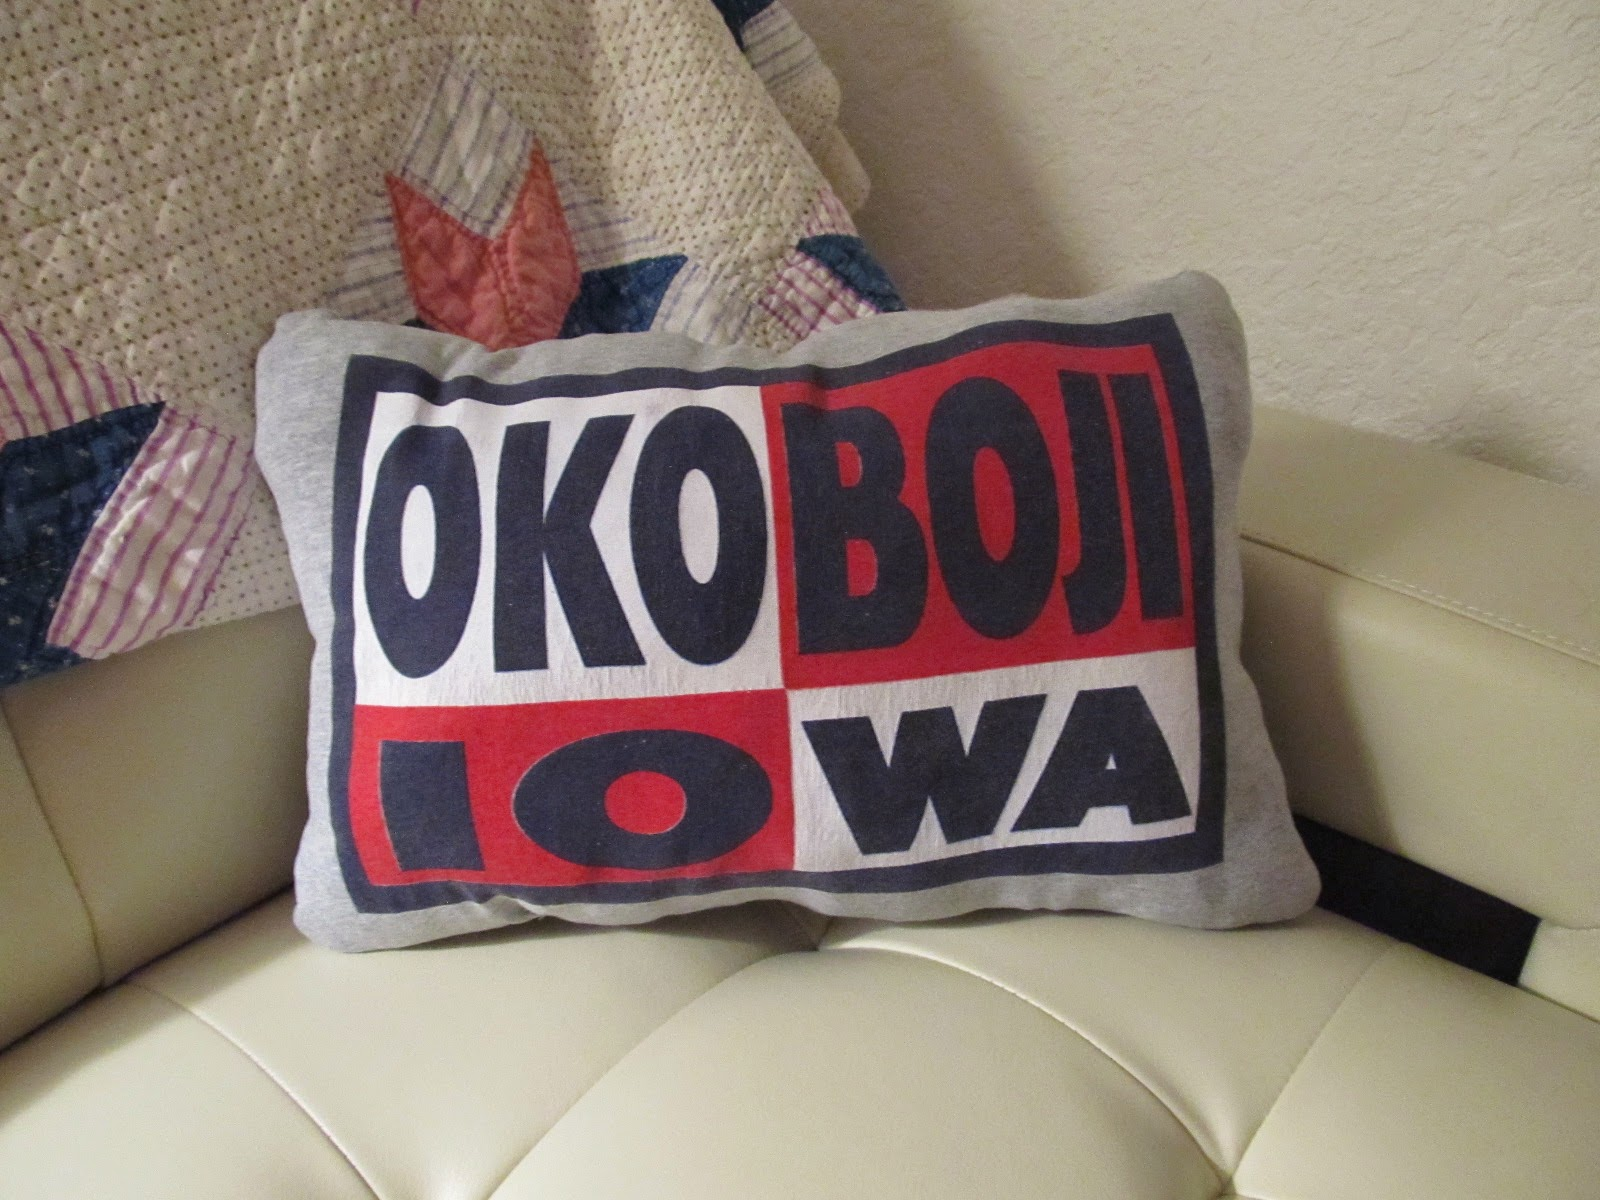 Okoboji, Iowa T-Shirt made into a Pillow